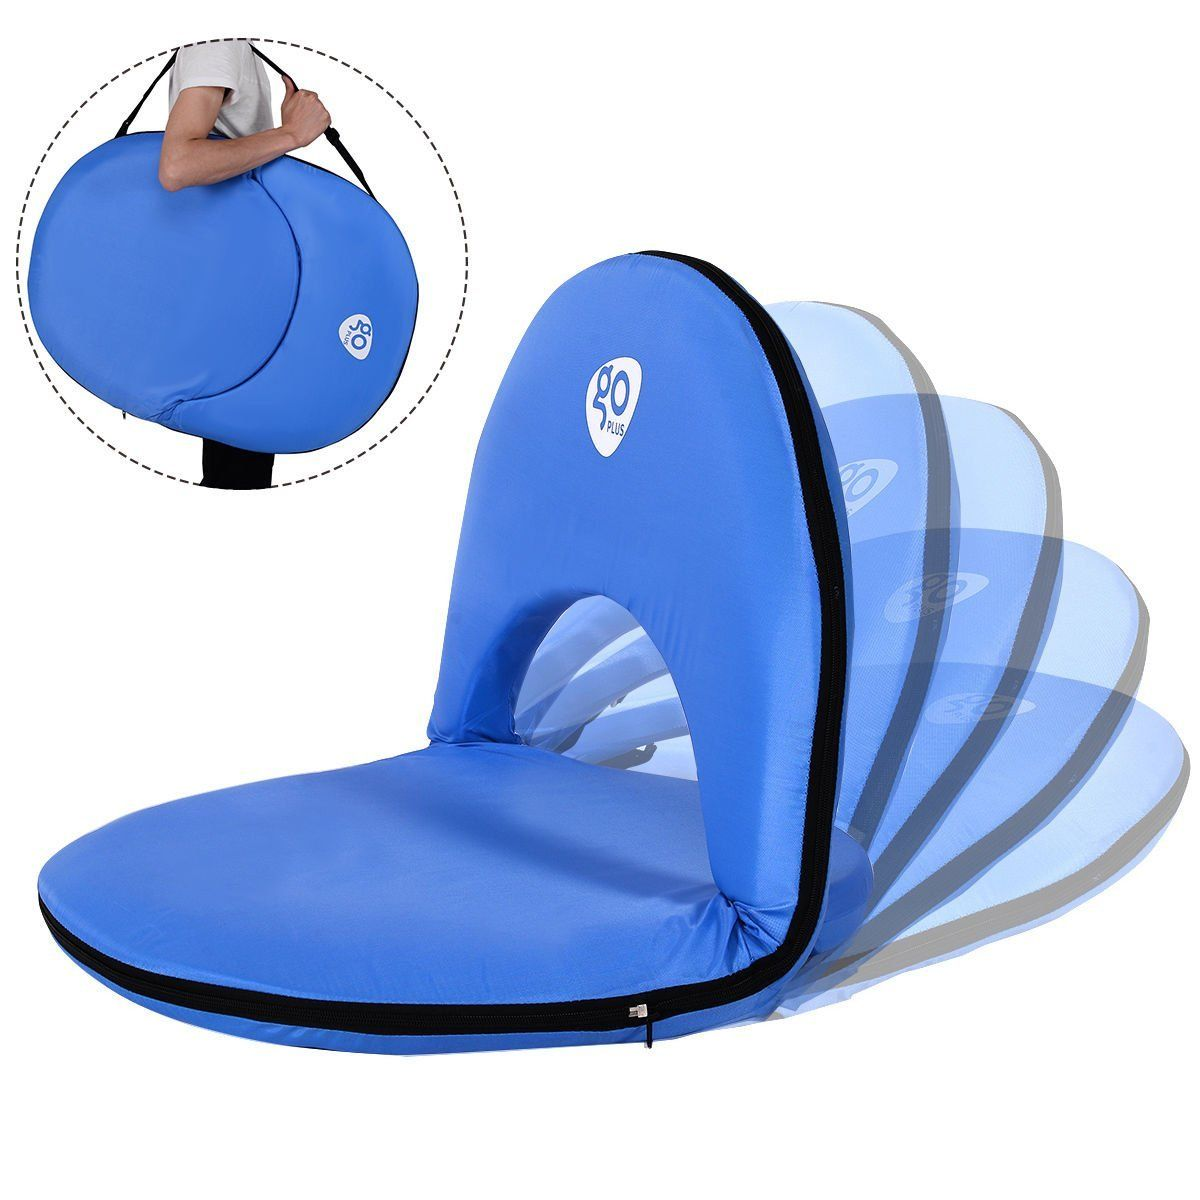 Amazon.com  Goplus Reclining Stadium Seat Multiuse Portable Padded Cushion Picnic Beach C&ing Chair  sc 1 st  Pinterest : reclining stadium seat - islam-shia.org